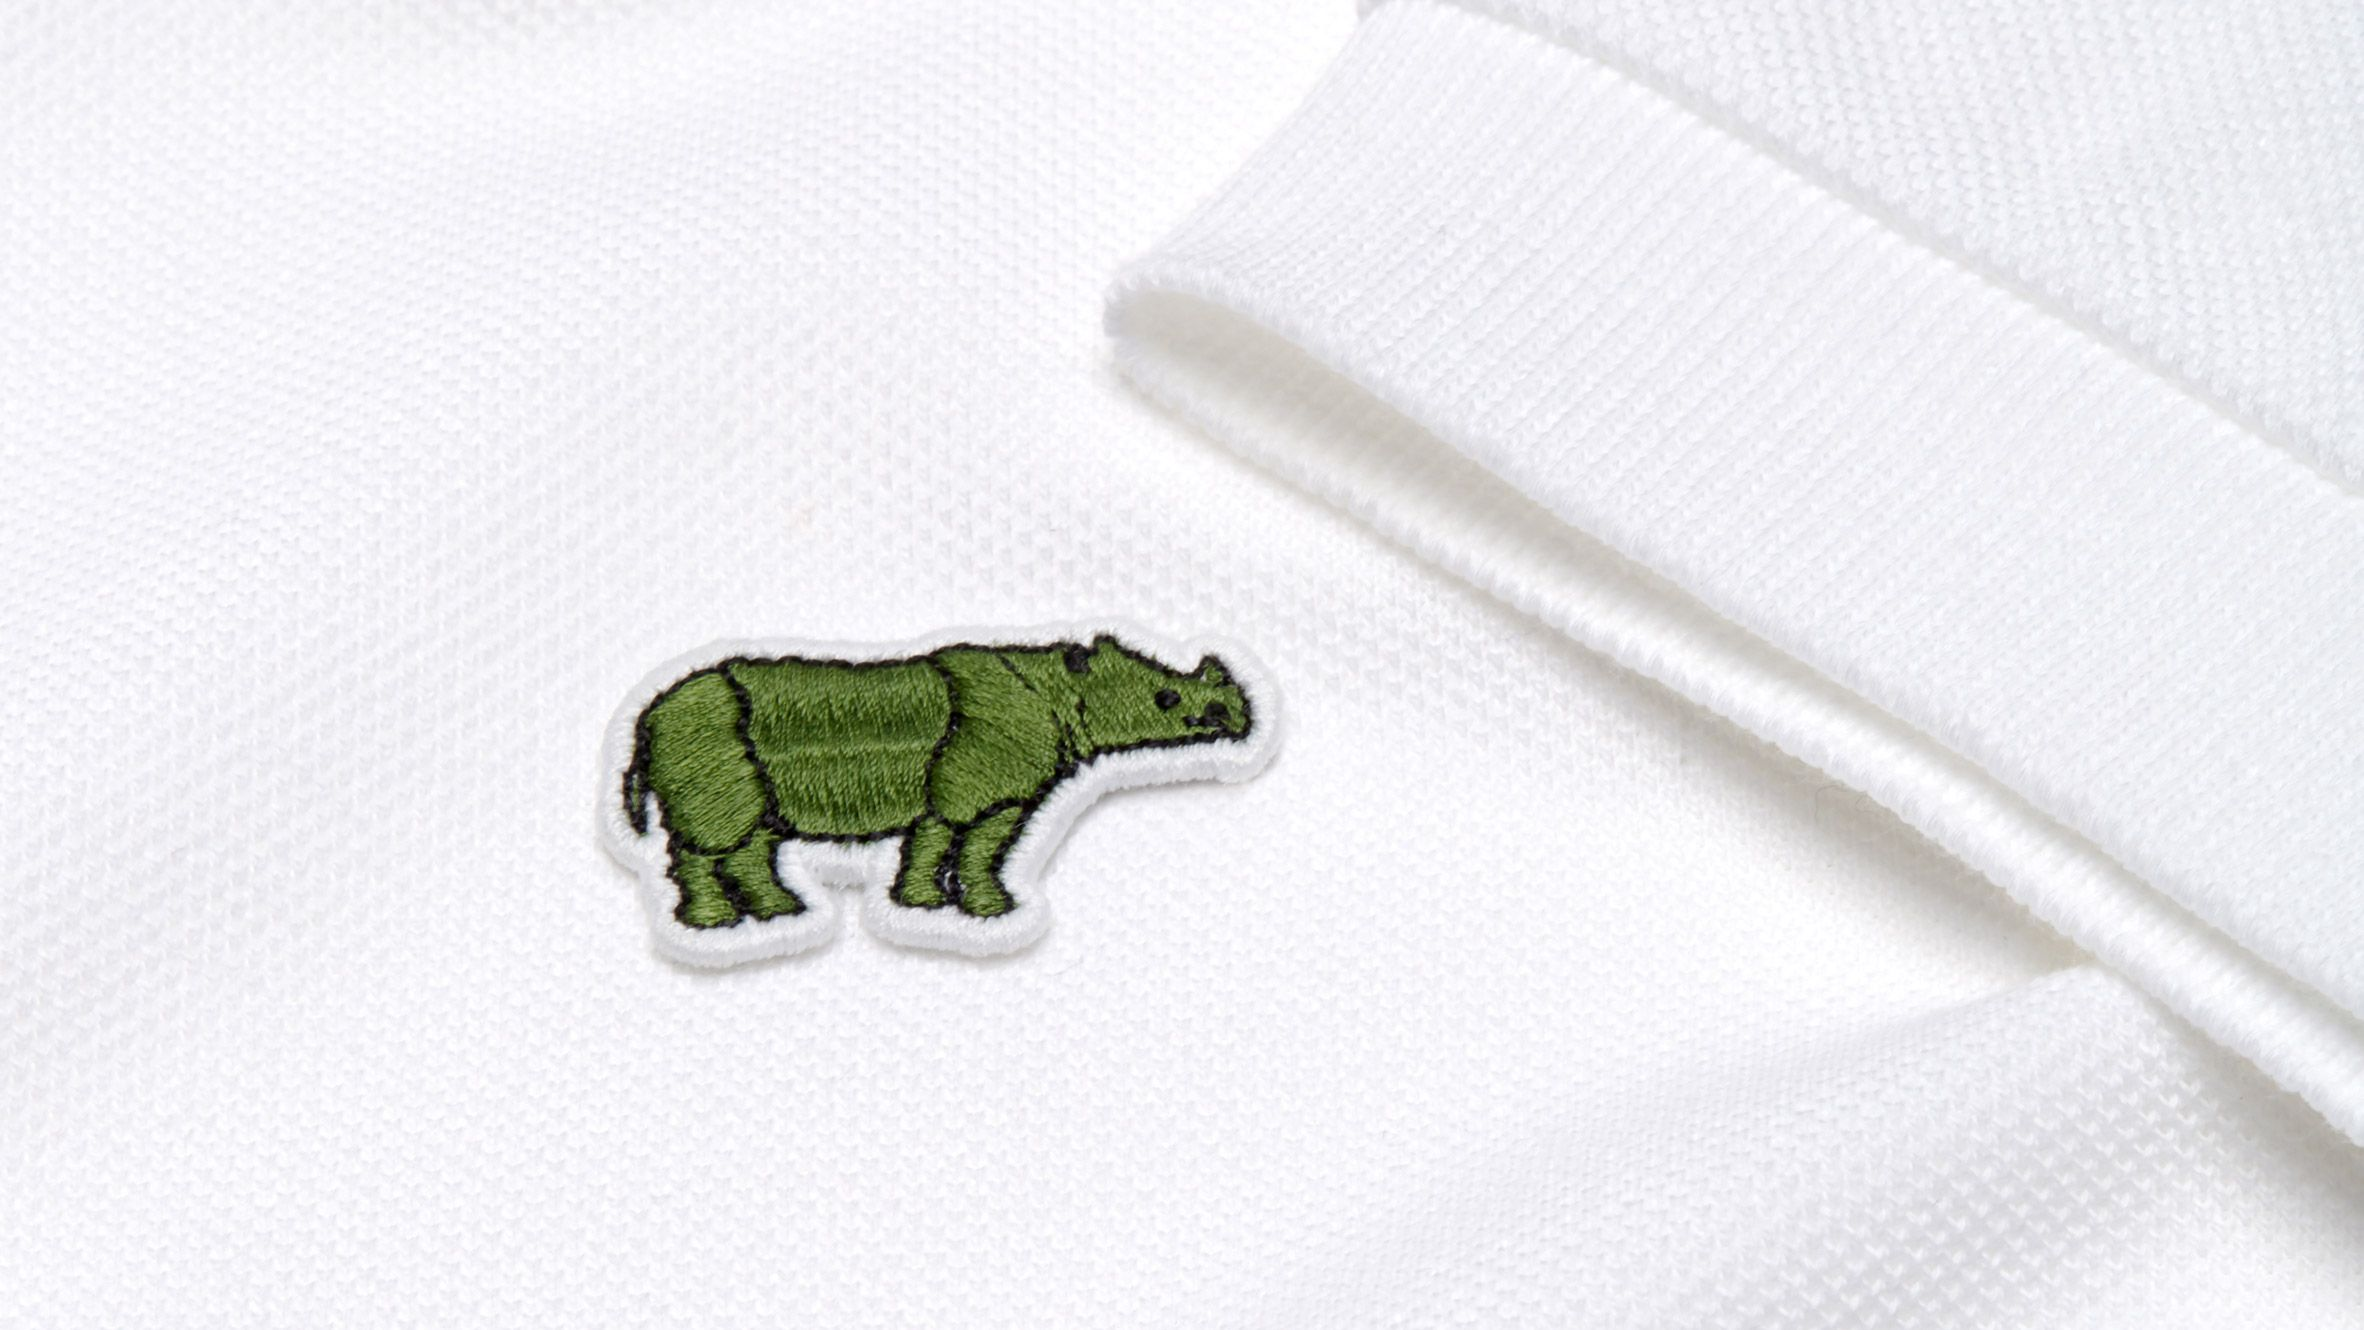 Lacoste Logo - Lacoste crocodile logo replaced by endangered species